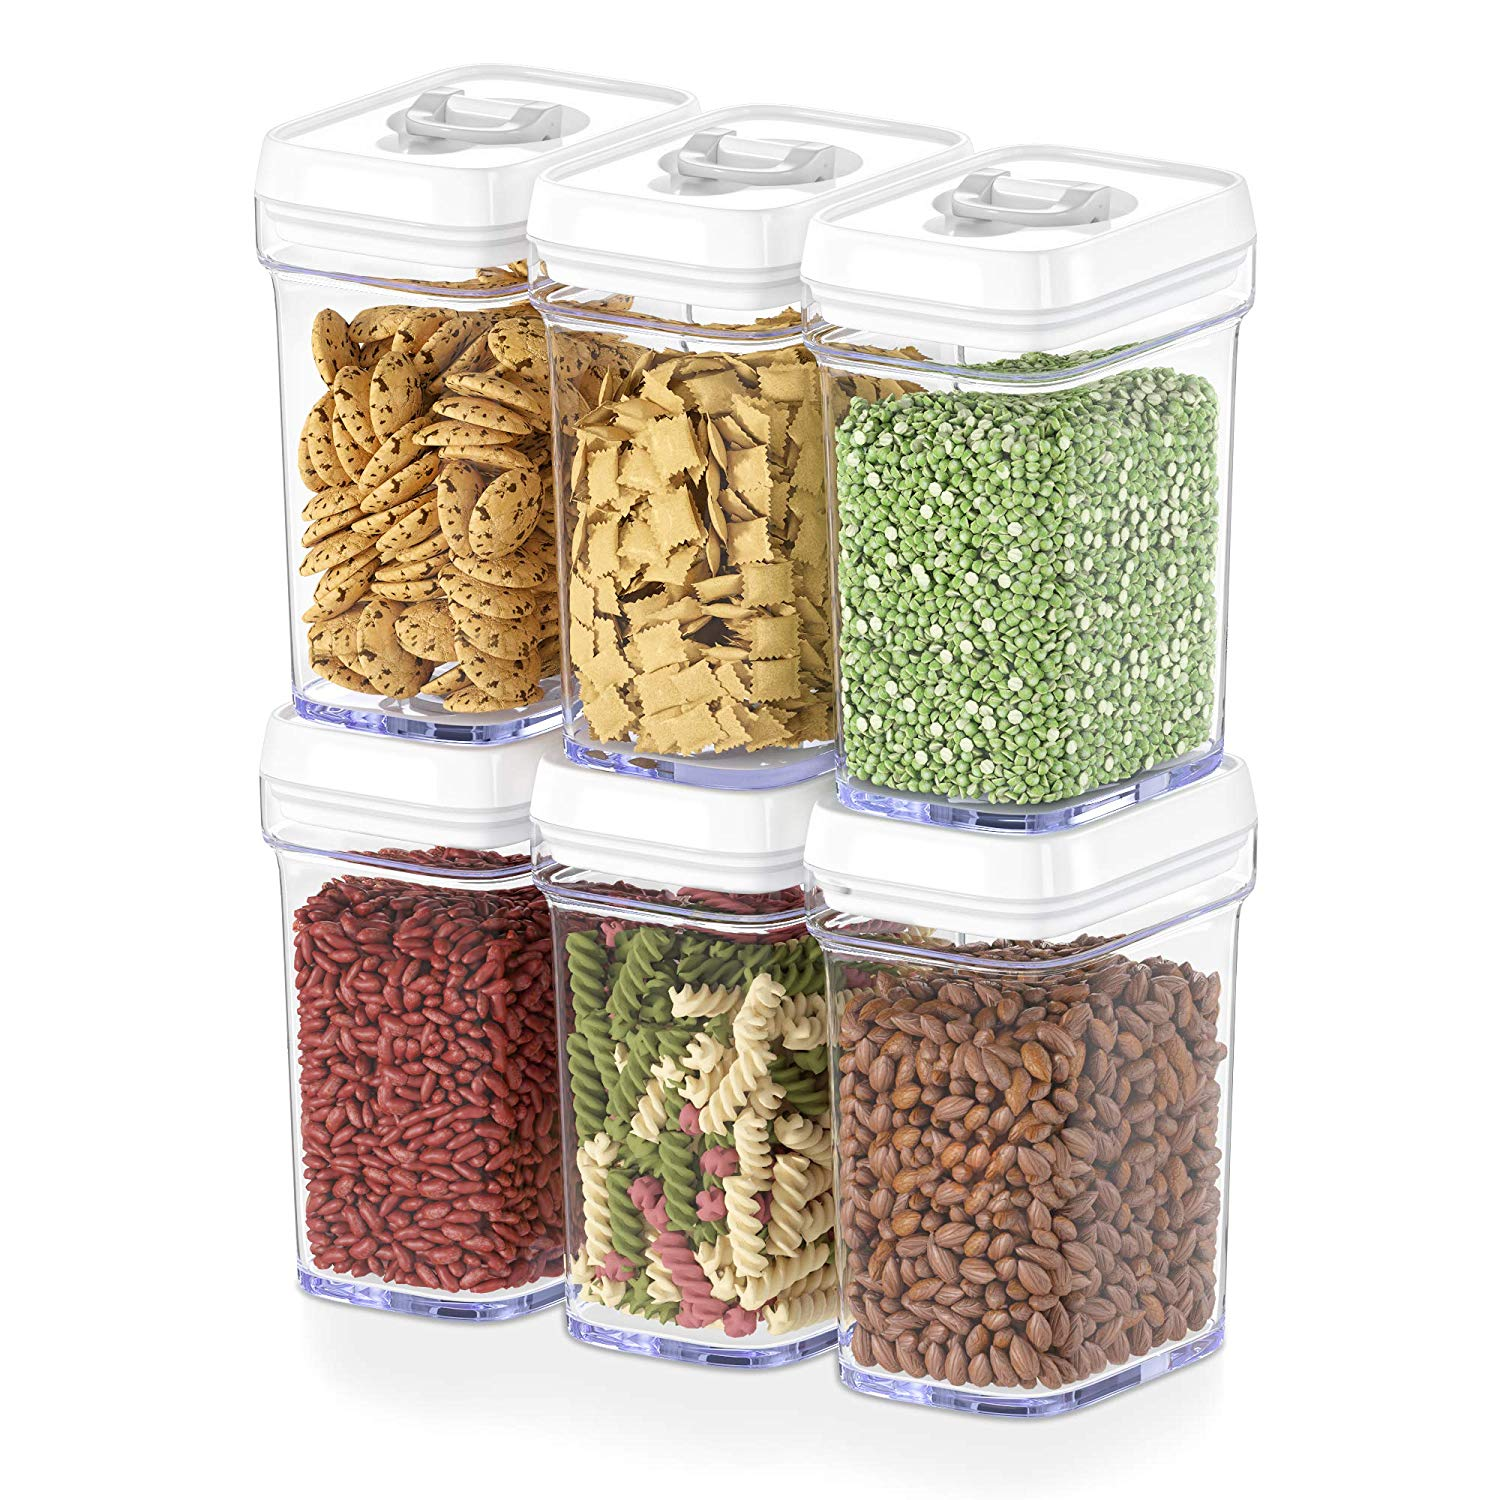 Snapware 18.5 Cup Rectangle Airtight Food Storage Container # 1098435